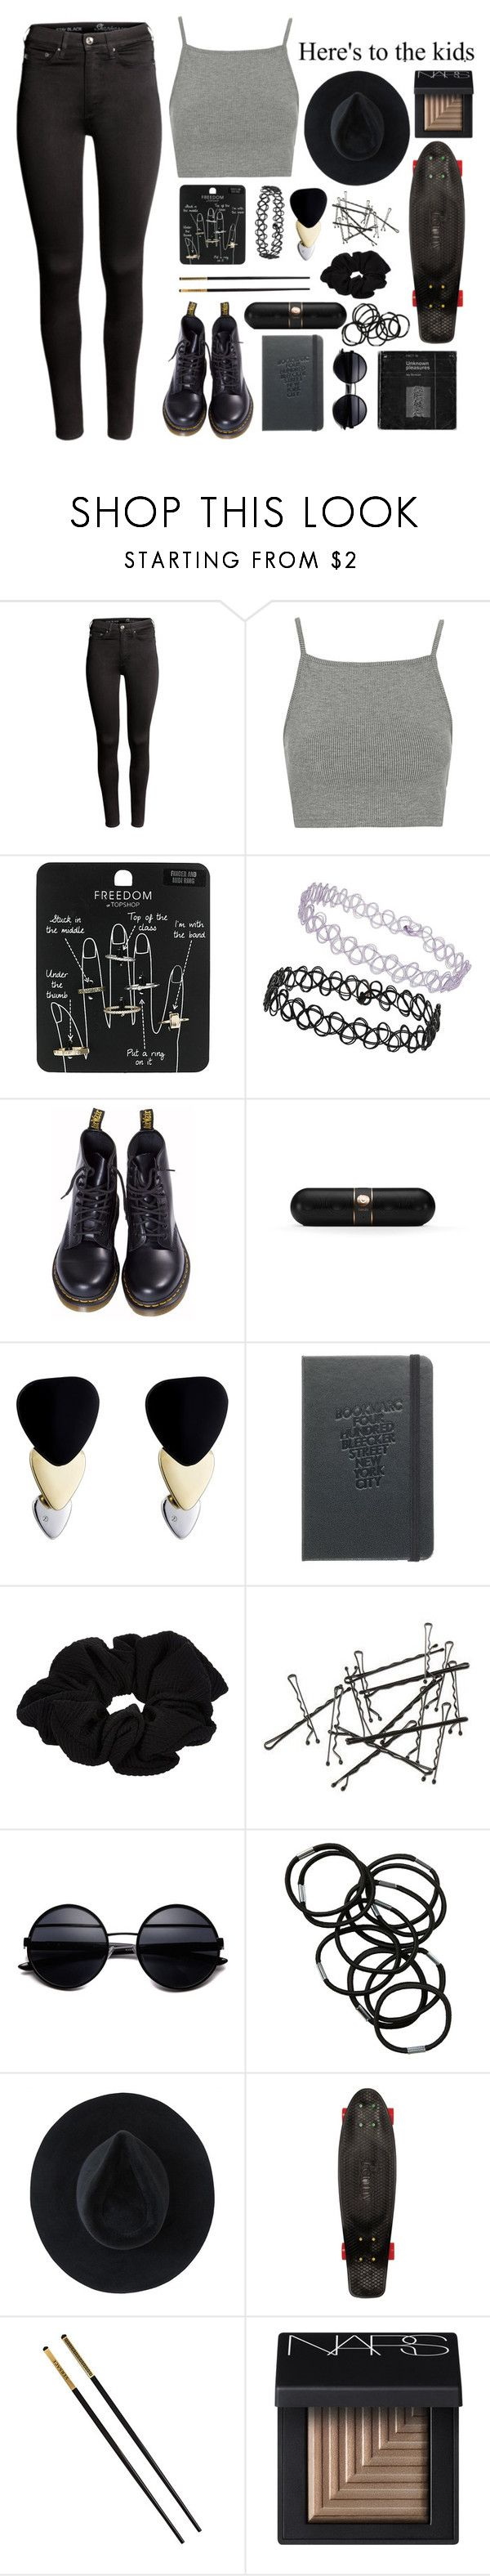 """No Money No Family 16 in the Middle of Miami"" by theyoungestvolcano ❤ liked on Polyvore featuring H&M, Topshop, Dr. Martens, Beats by Dr. Dre, Marc by Marc Jacobs, River Island, Monki, Ryan Roche, Quiksilver and Versace"